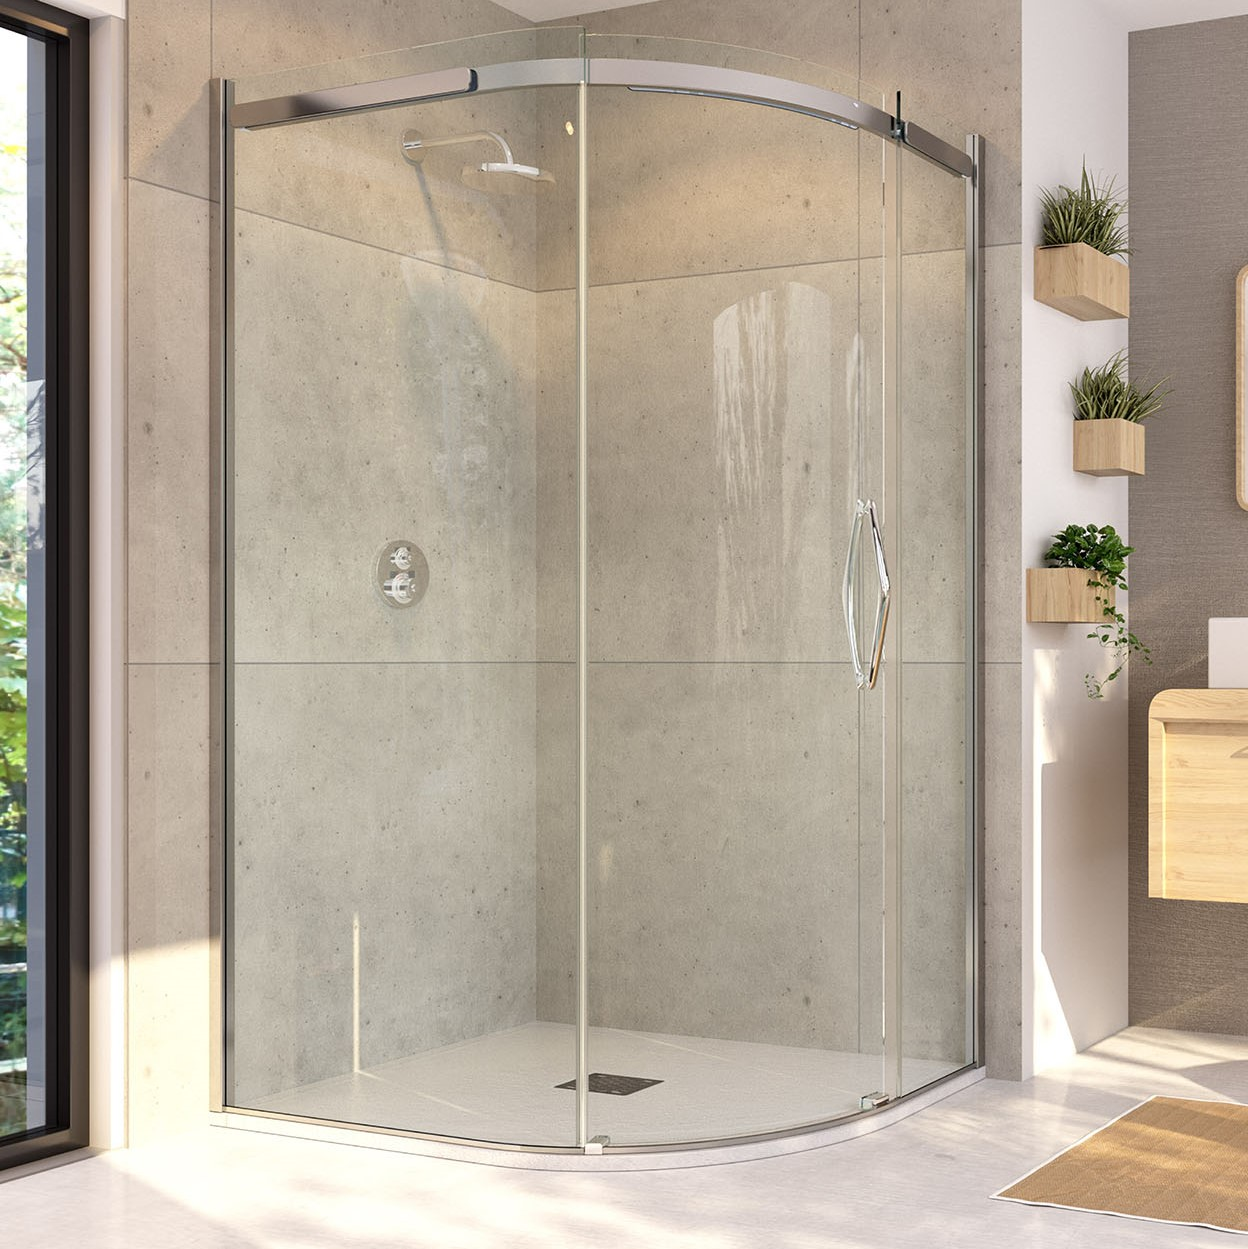 Flair Oro Sliding Door Quadrant Shower